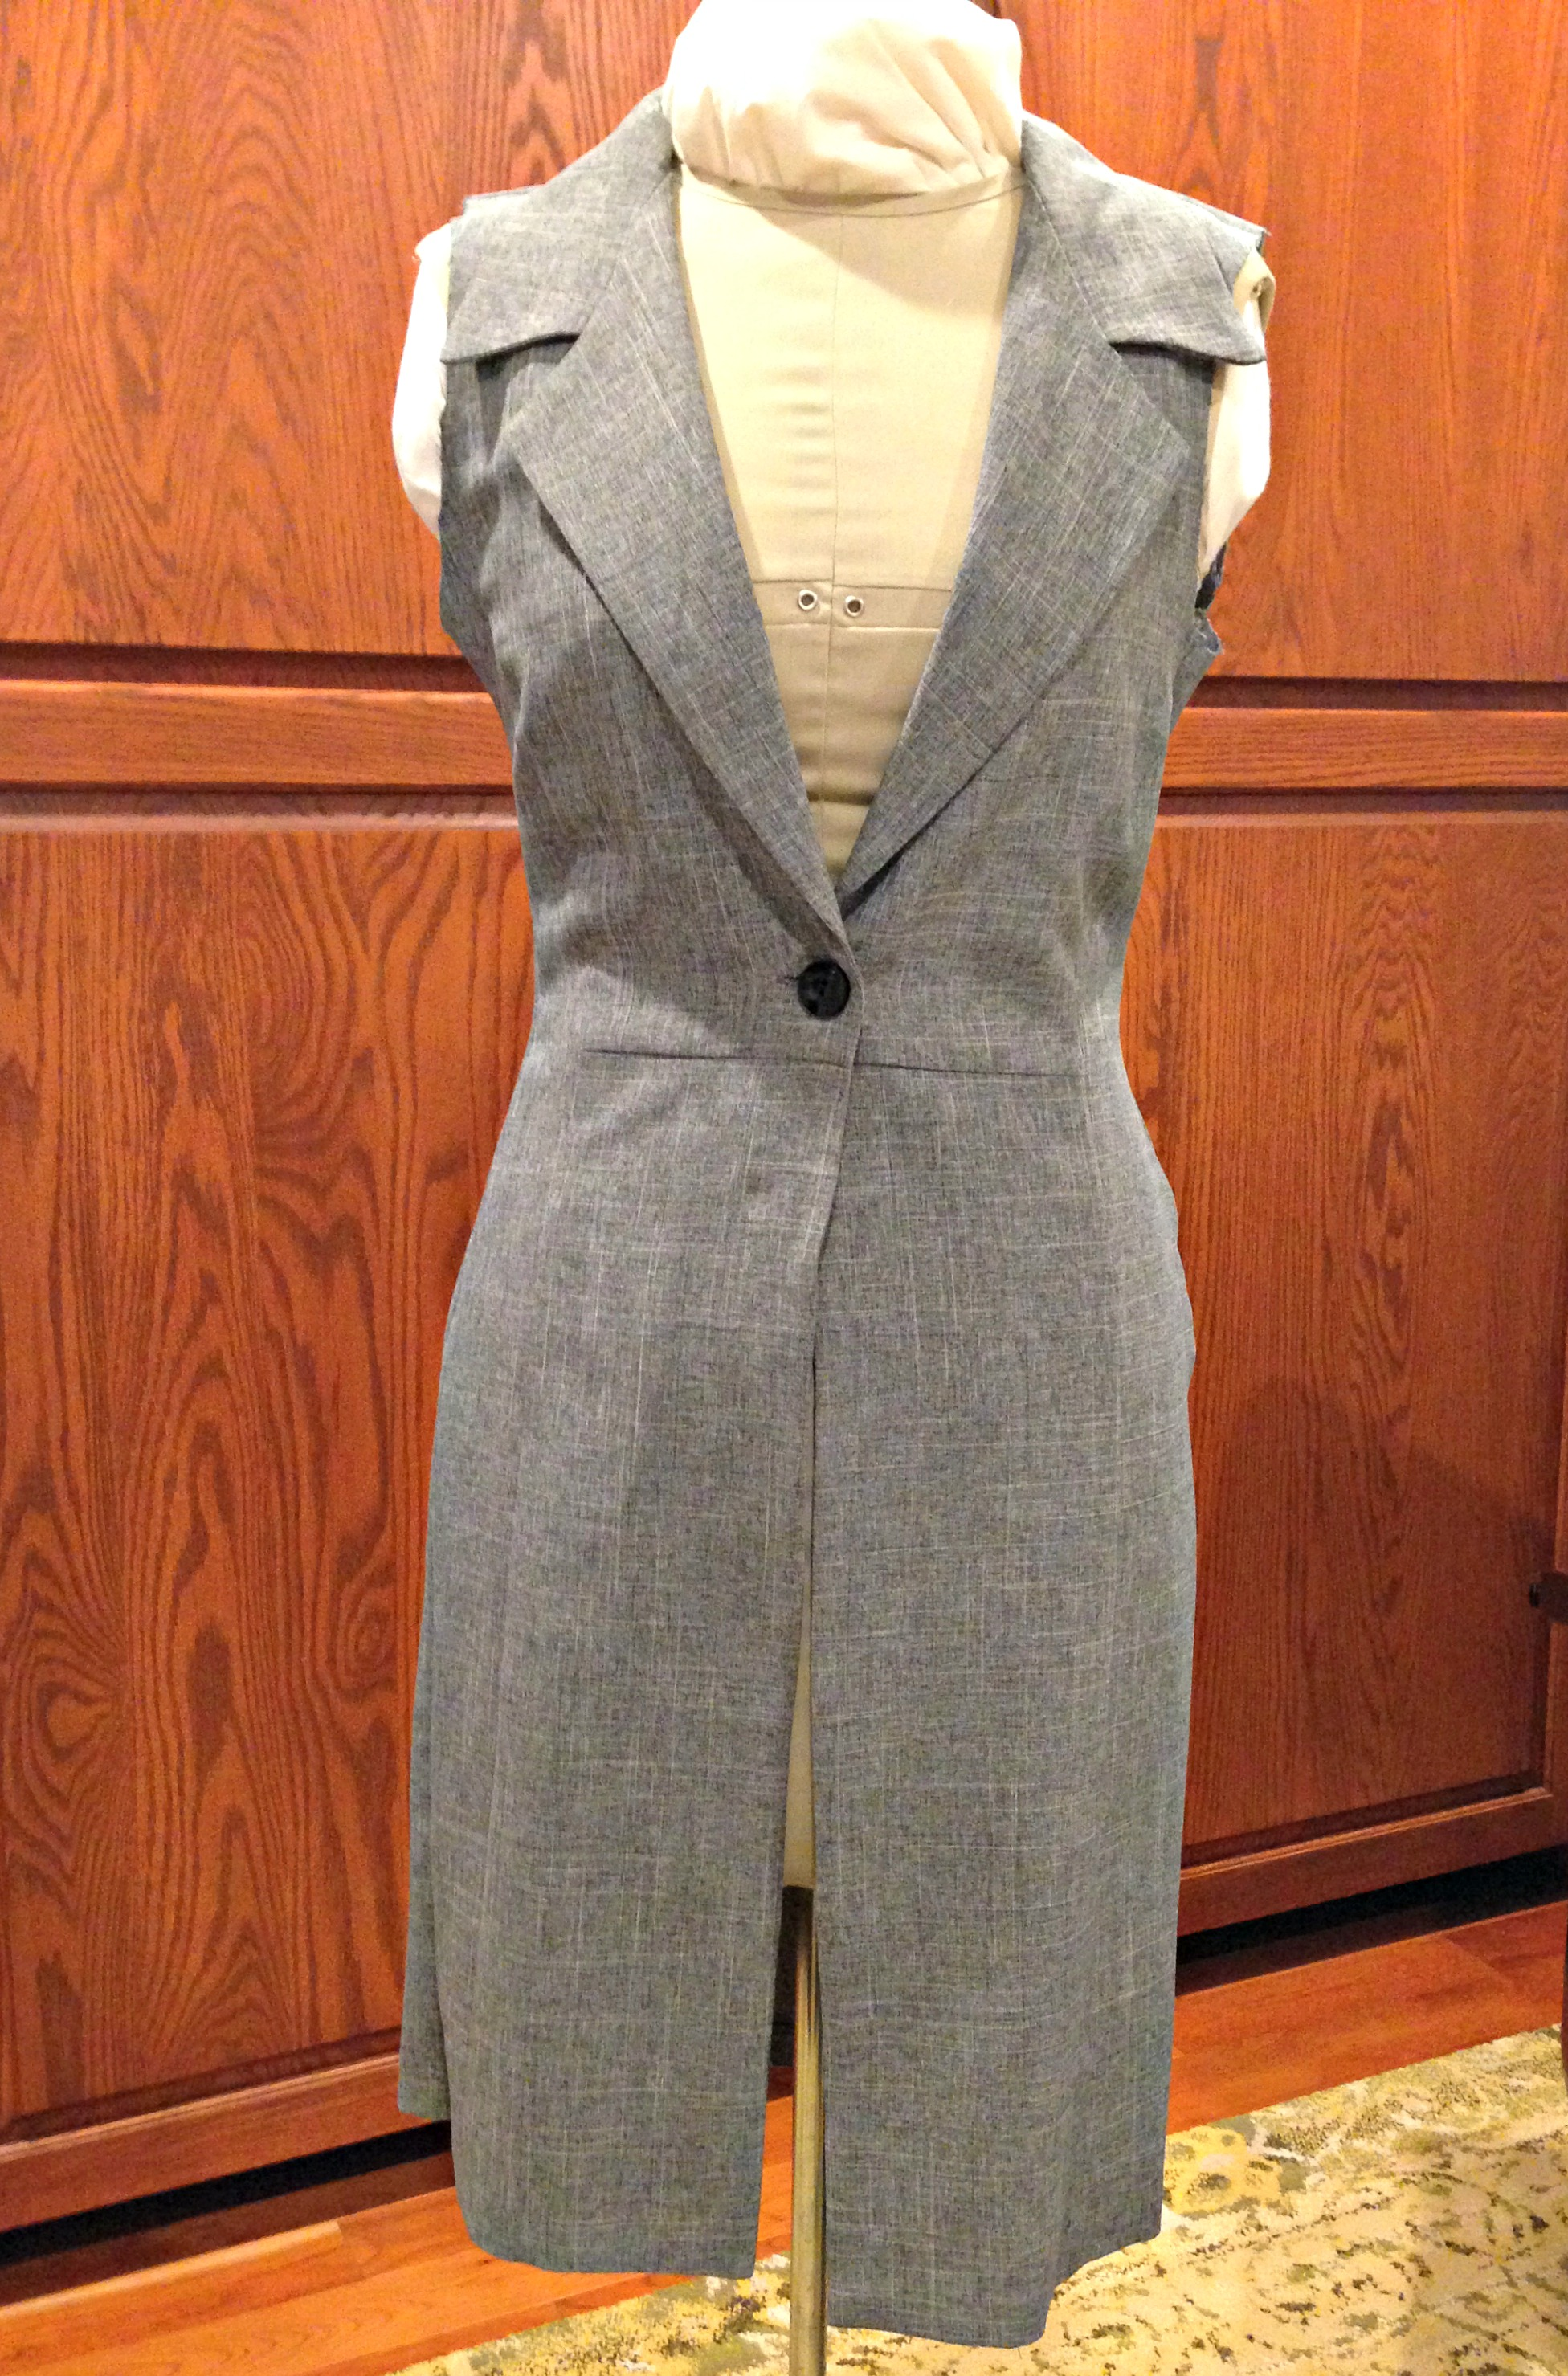 Refashioned Sleeveless Coat with reshaped armholes